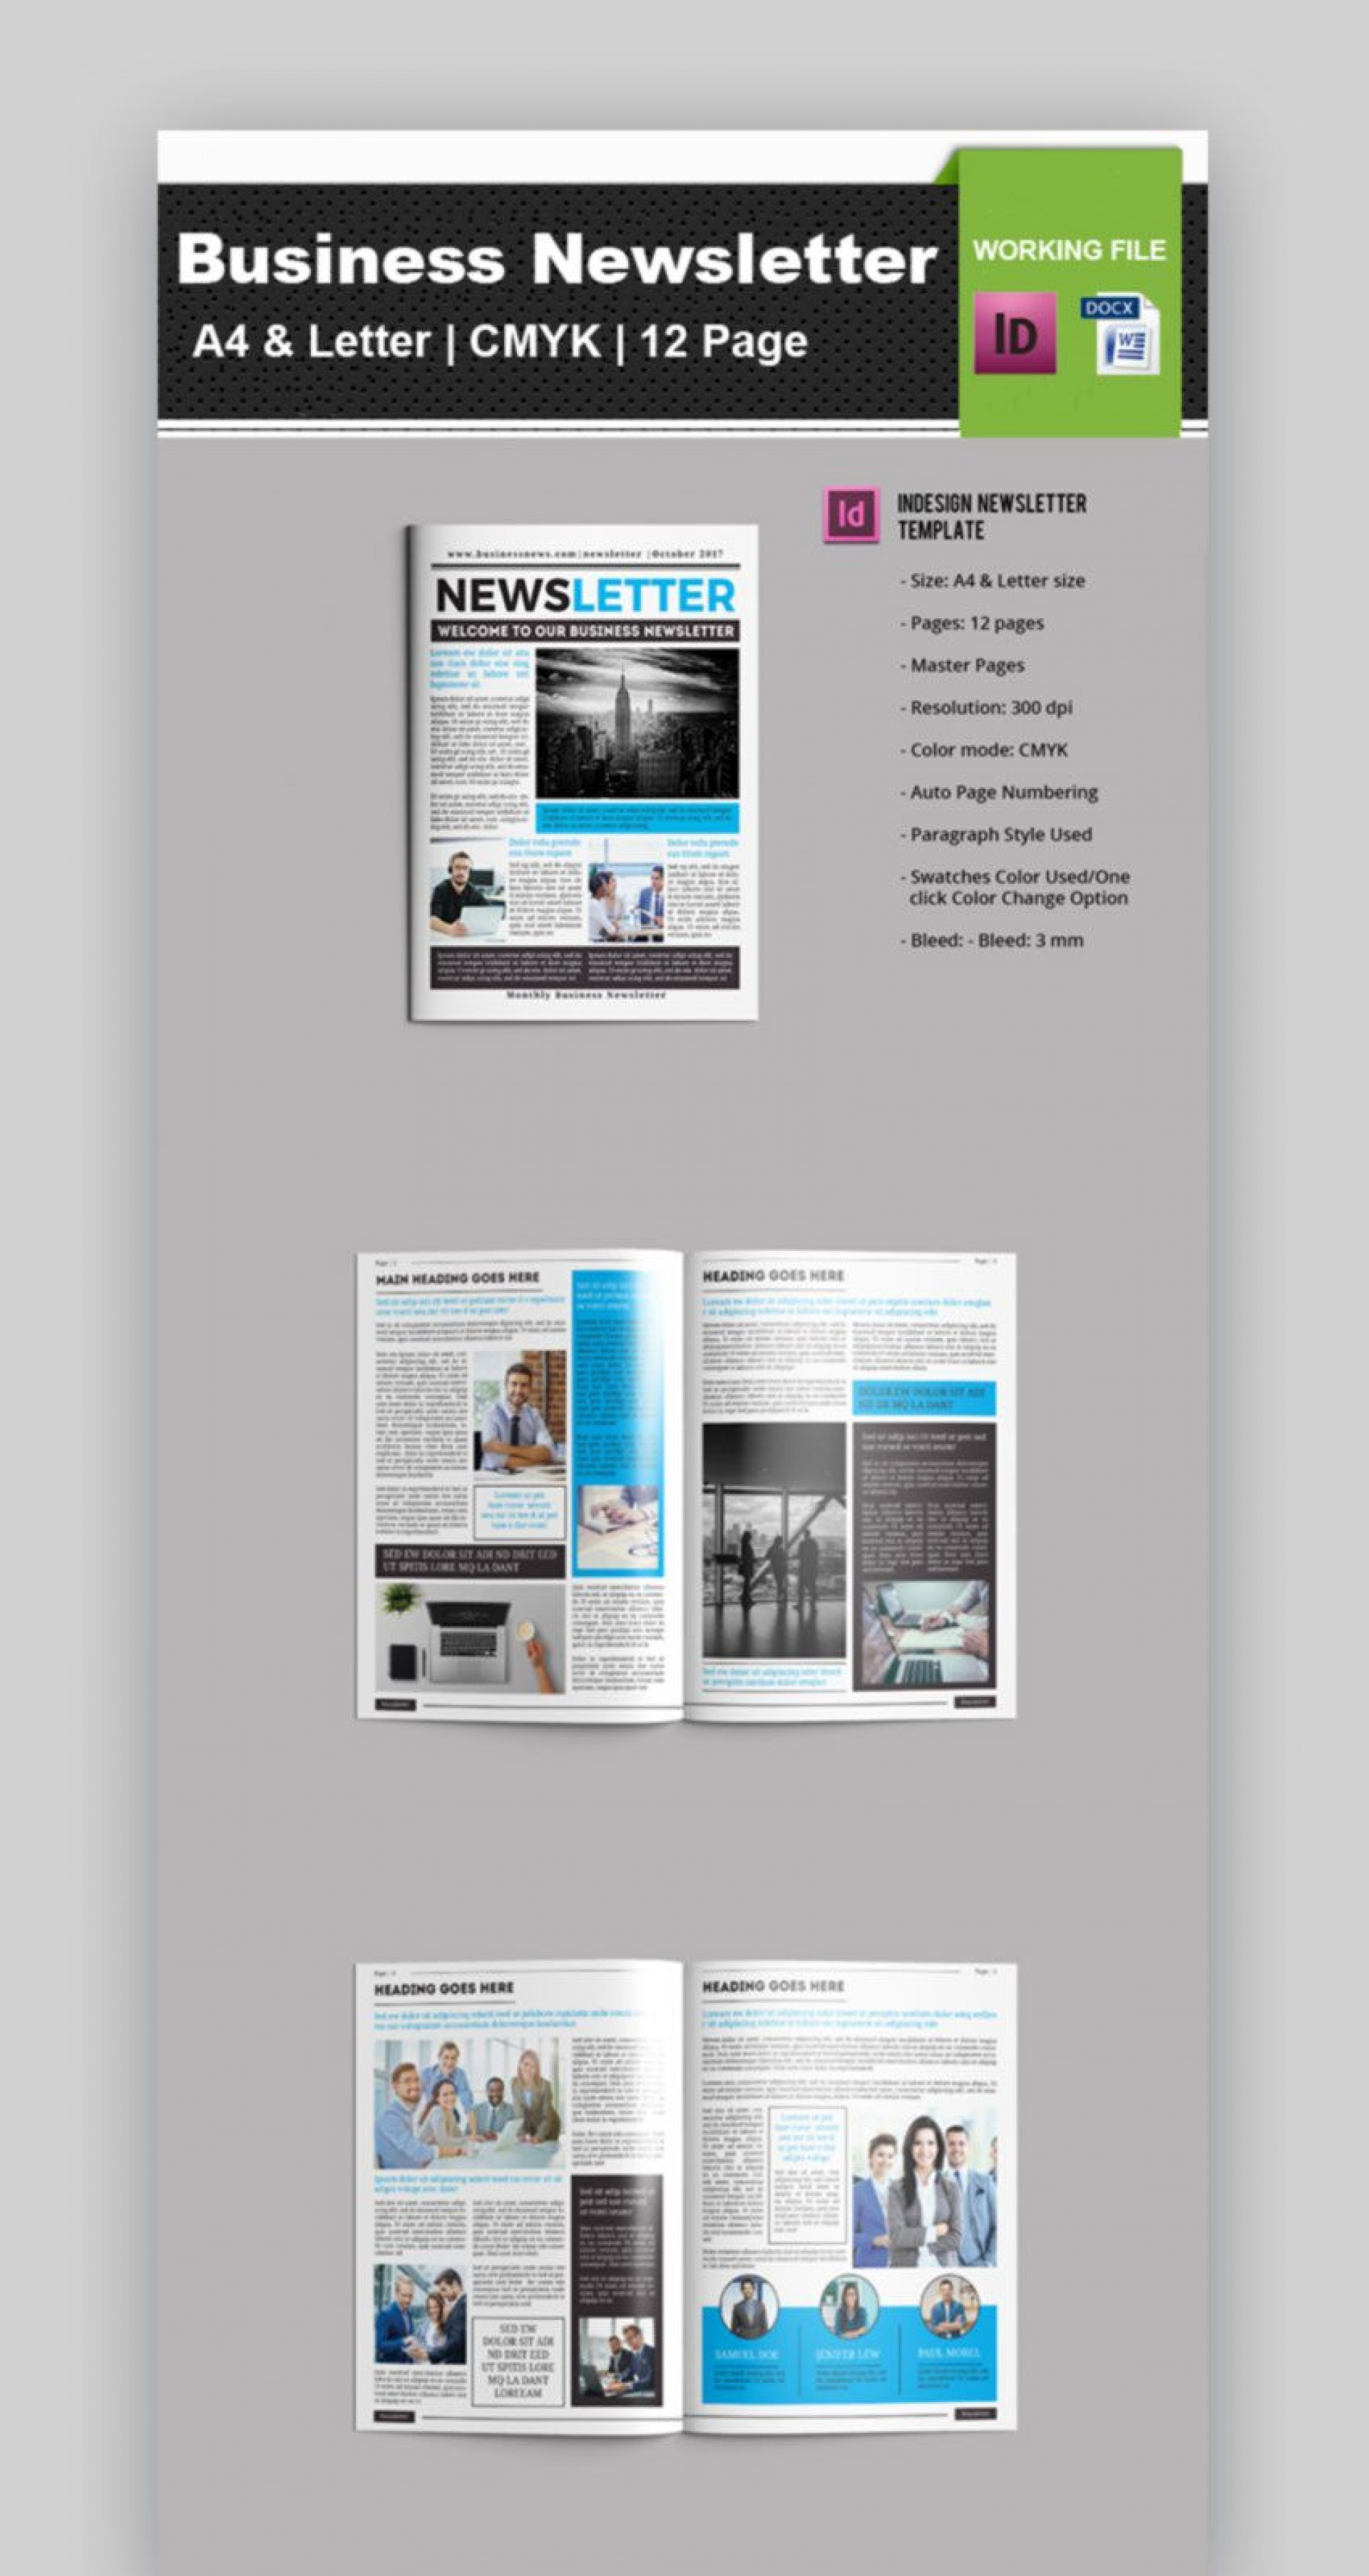 006 Sensational Publisher Newsletter Template Free Inspiration  M Download Microsoft1920